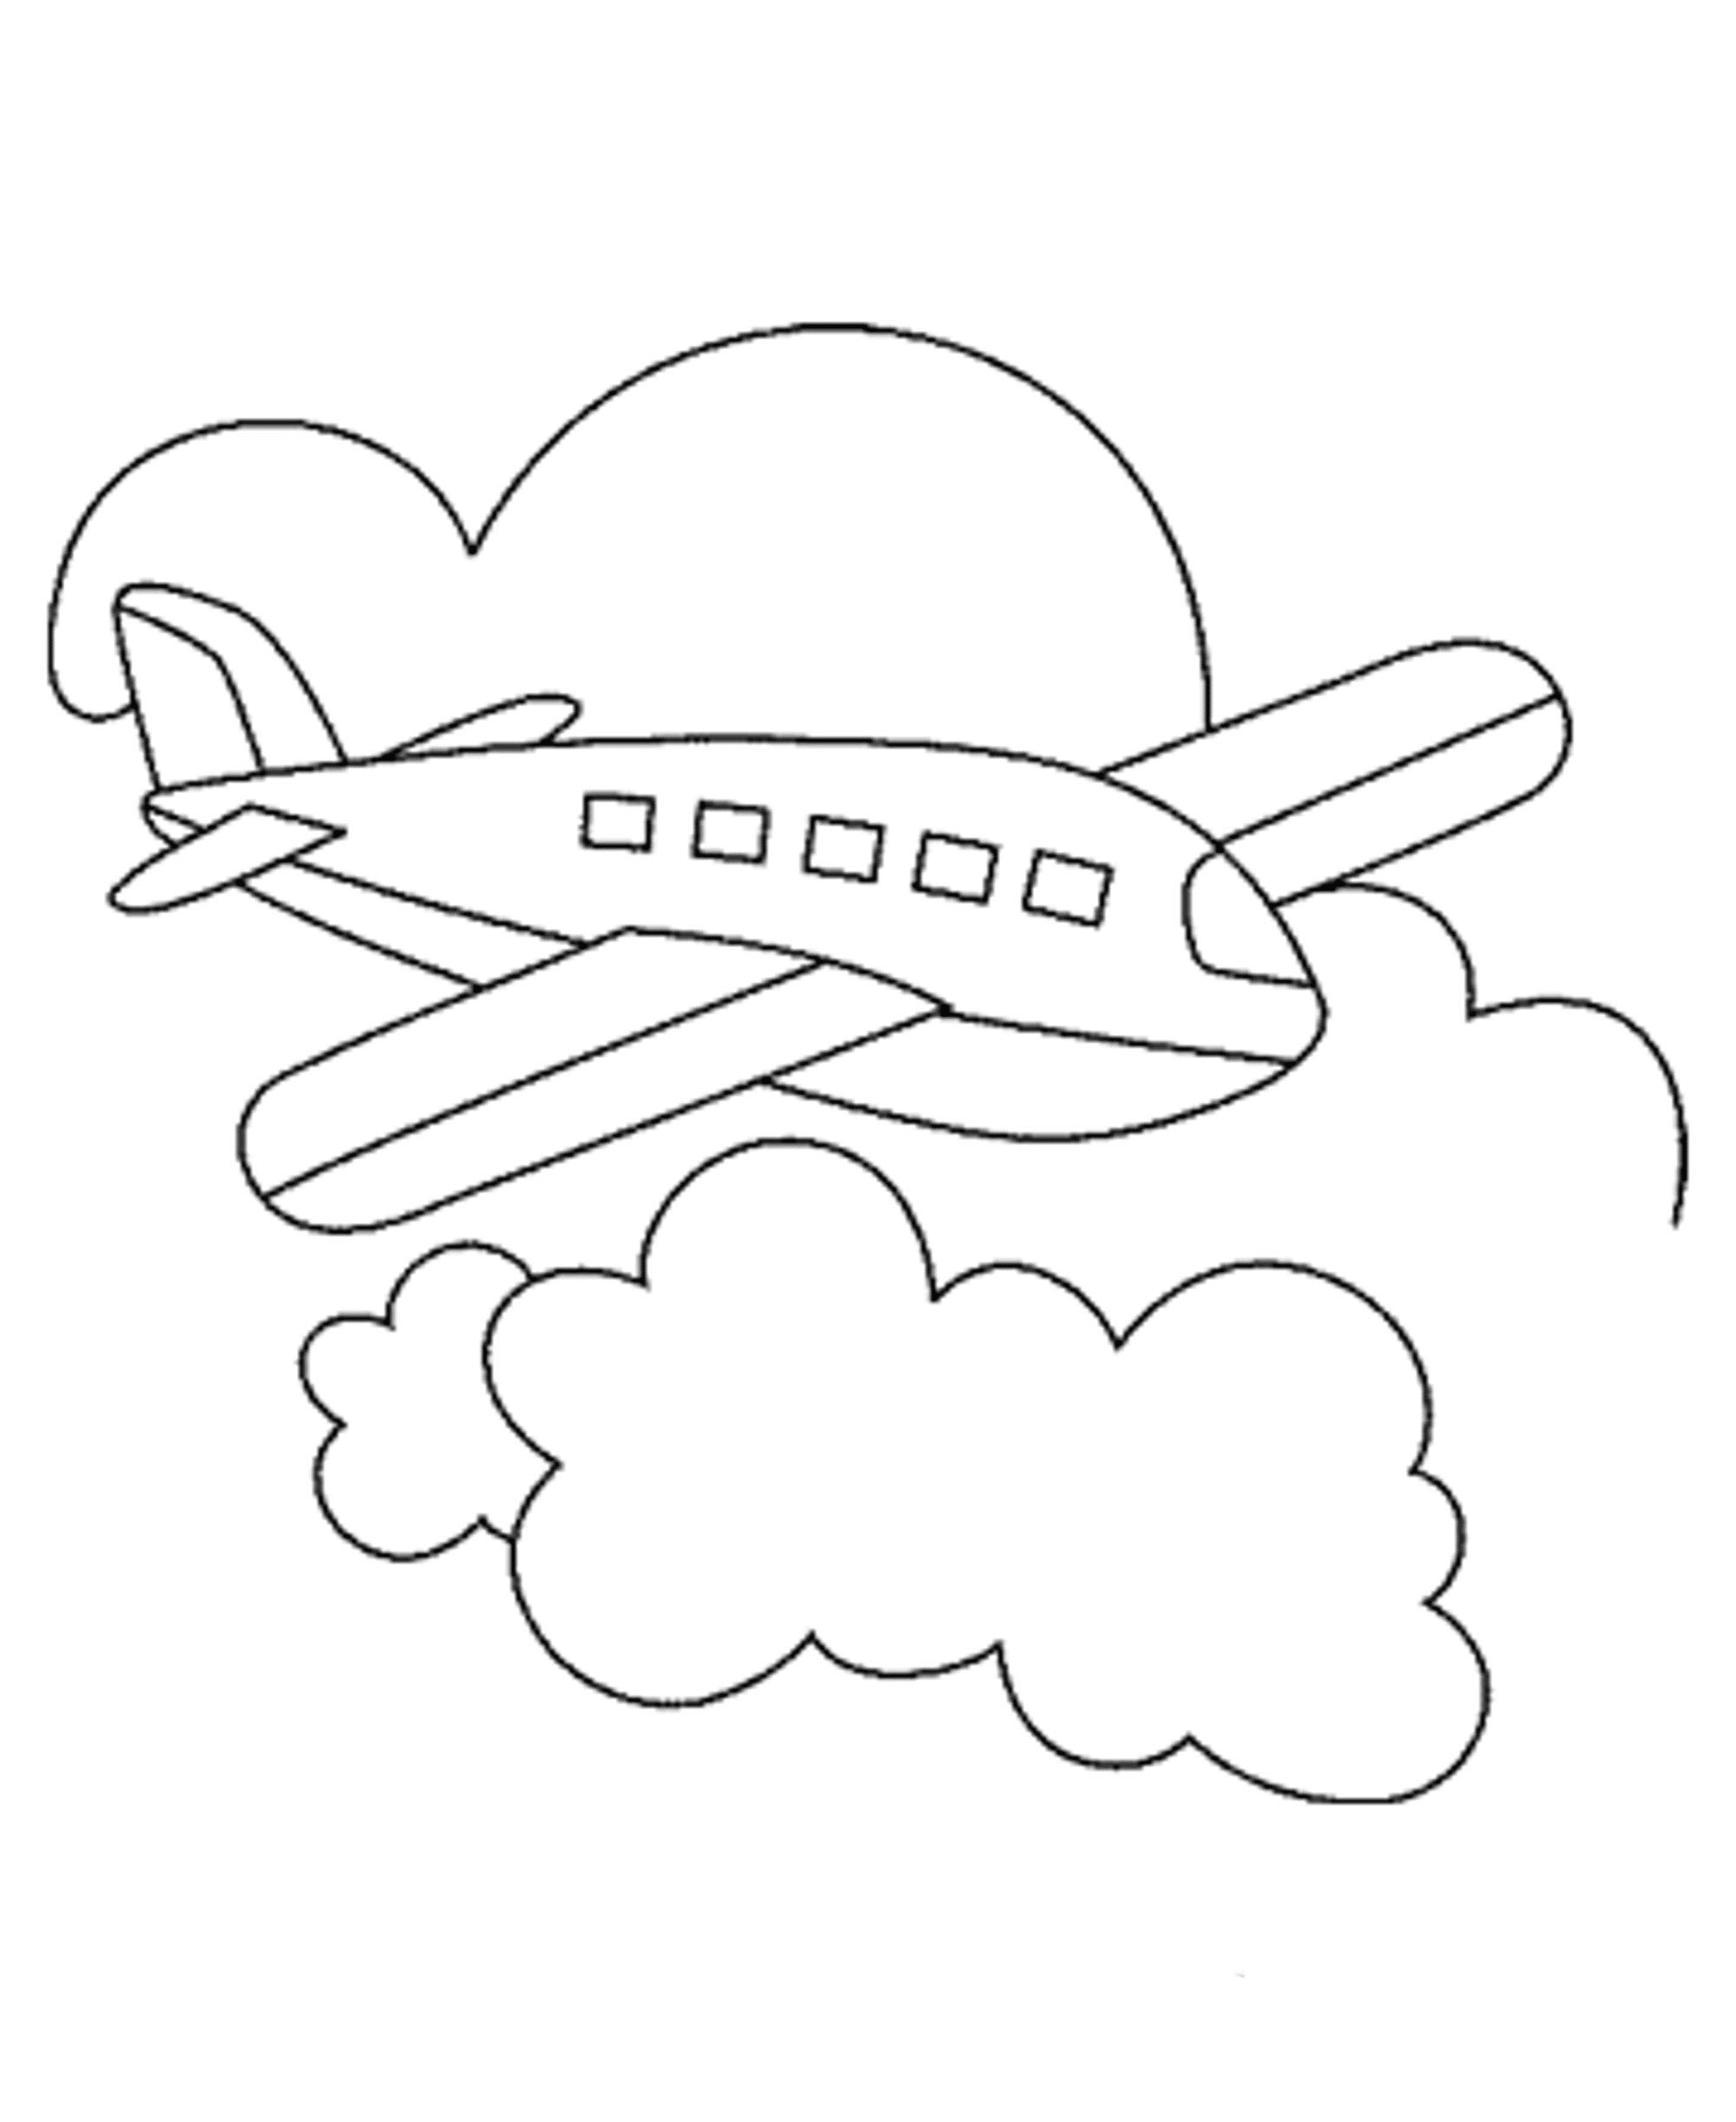 bi plane coloring pages - photo#28